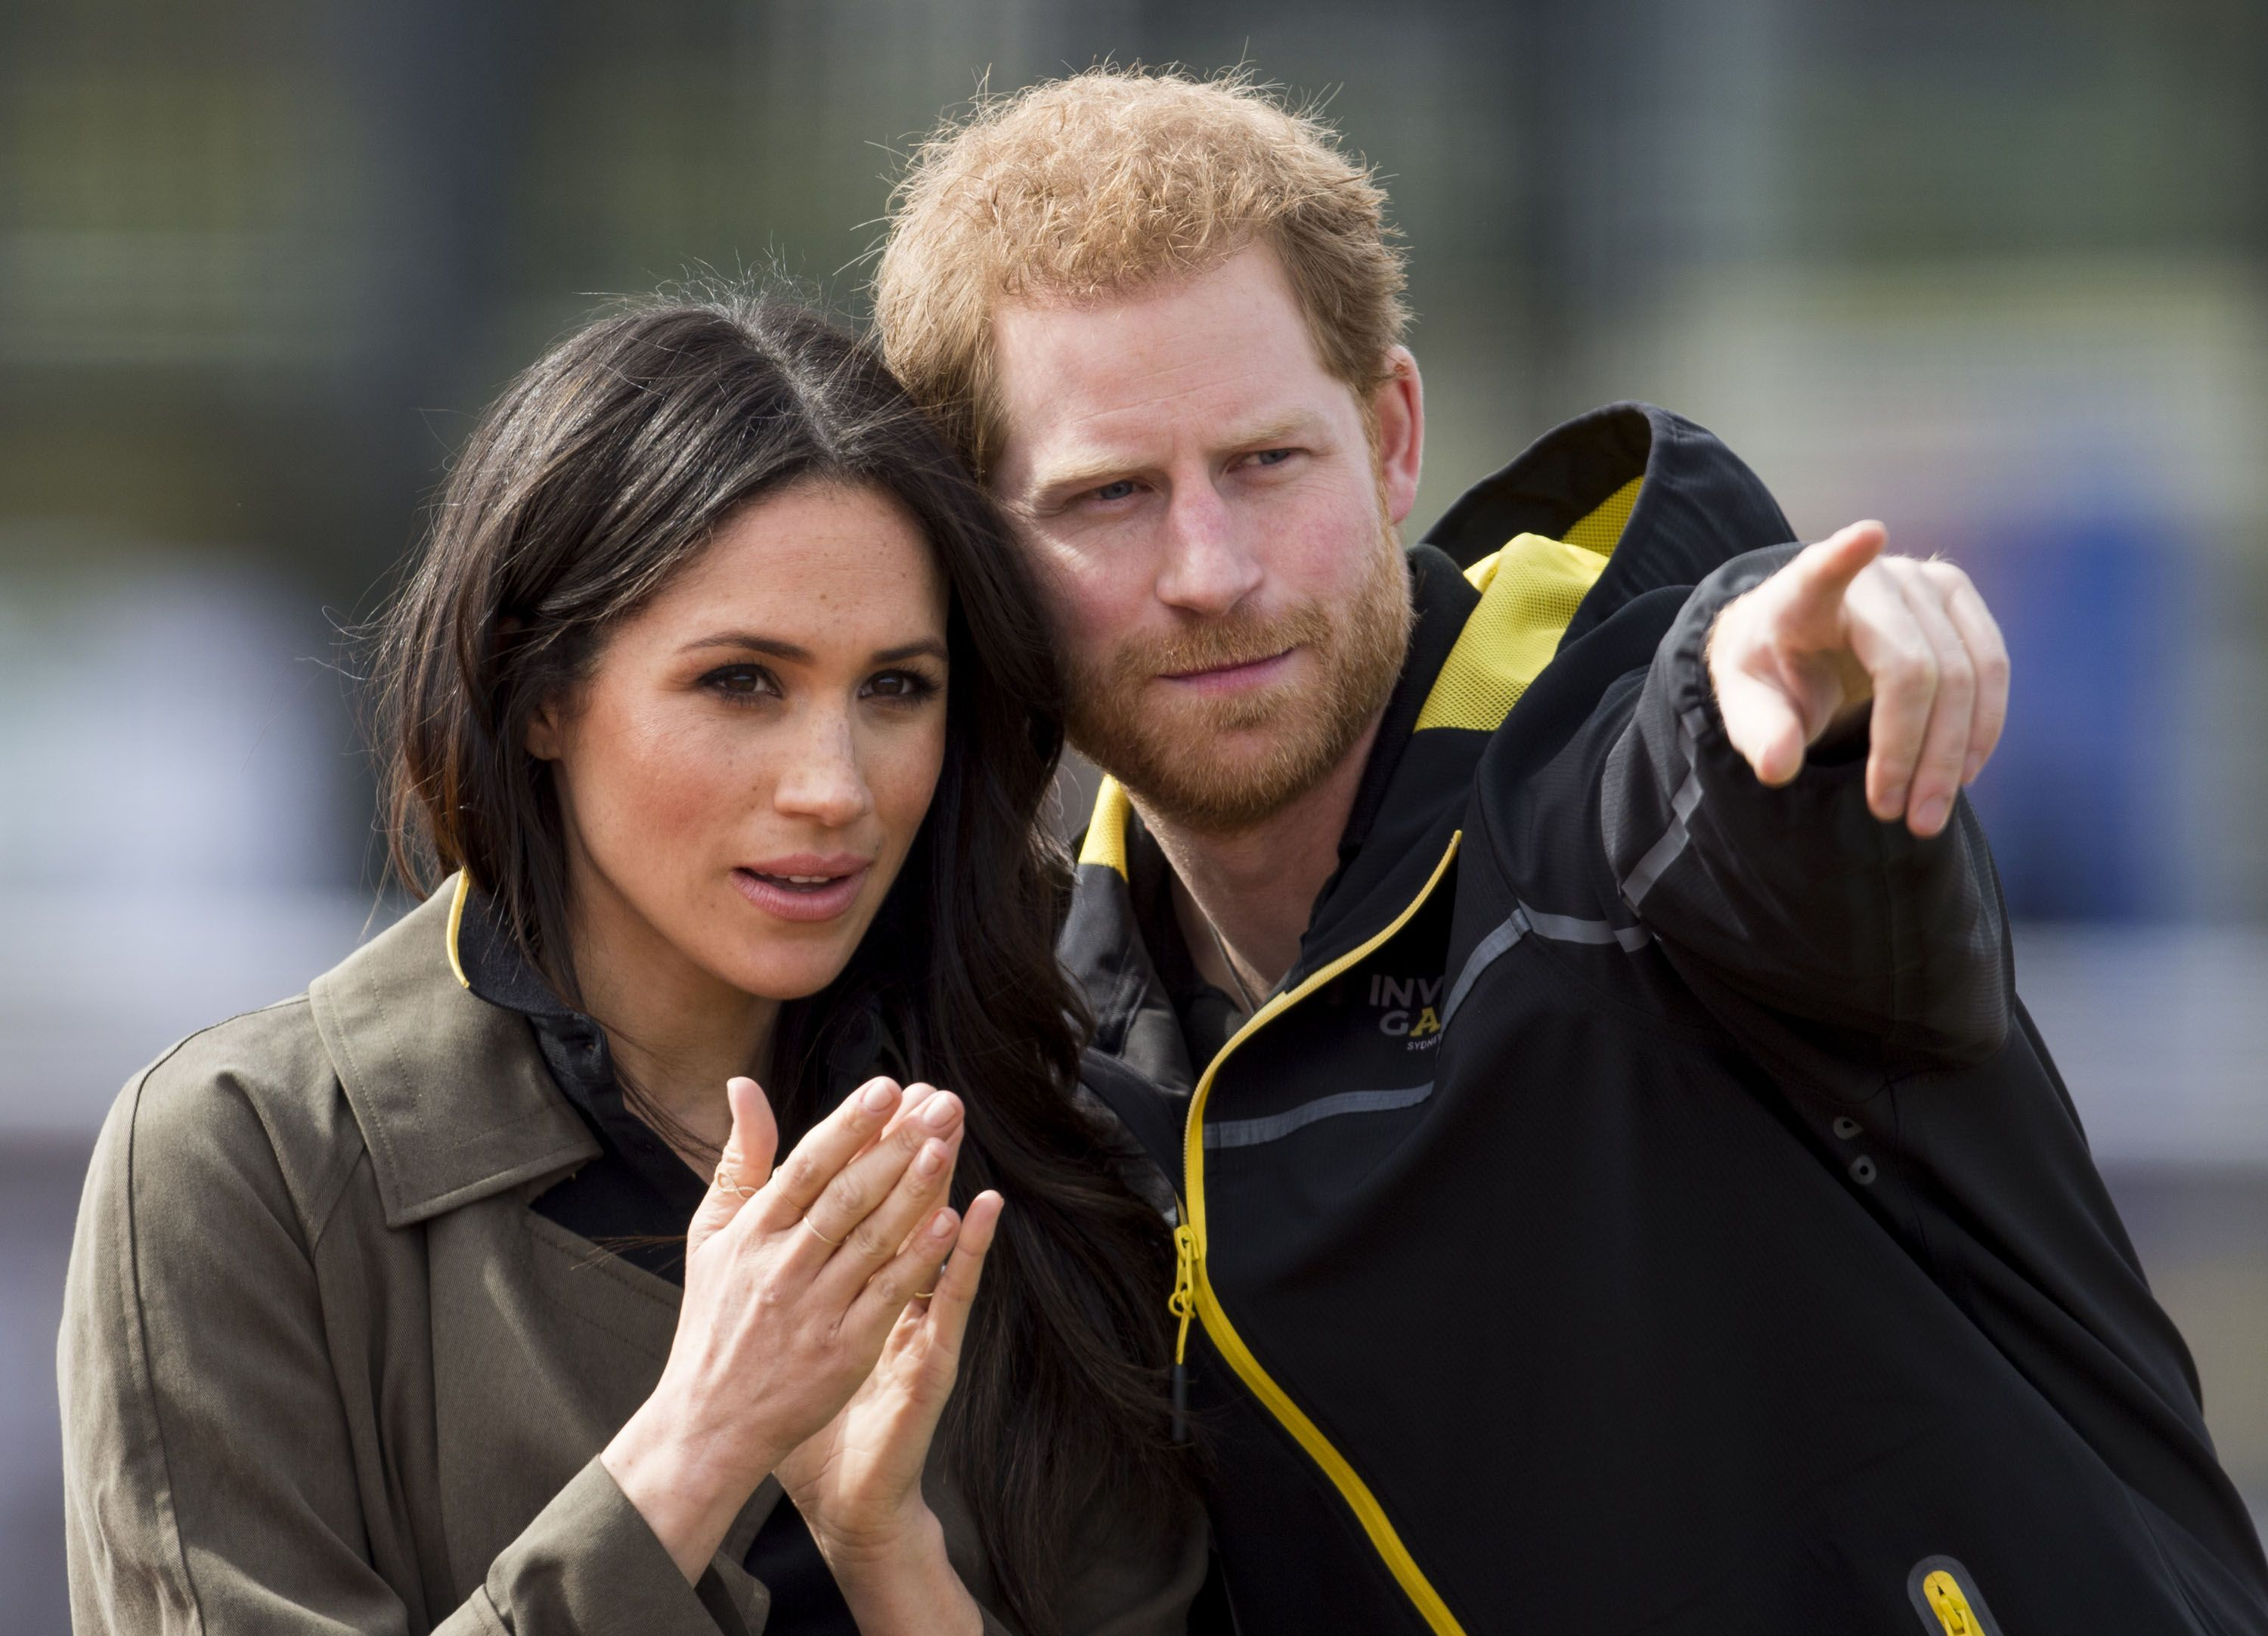 A Definitive Timeline of Meghan Markle and Prince Harry's Relationship in2017 forecast